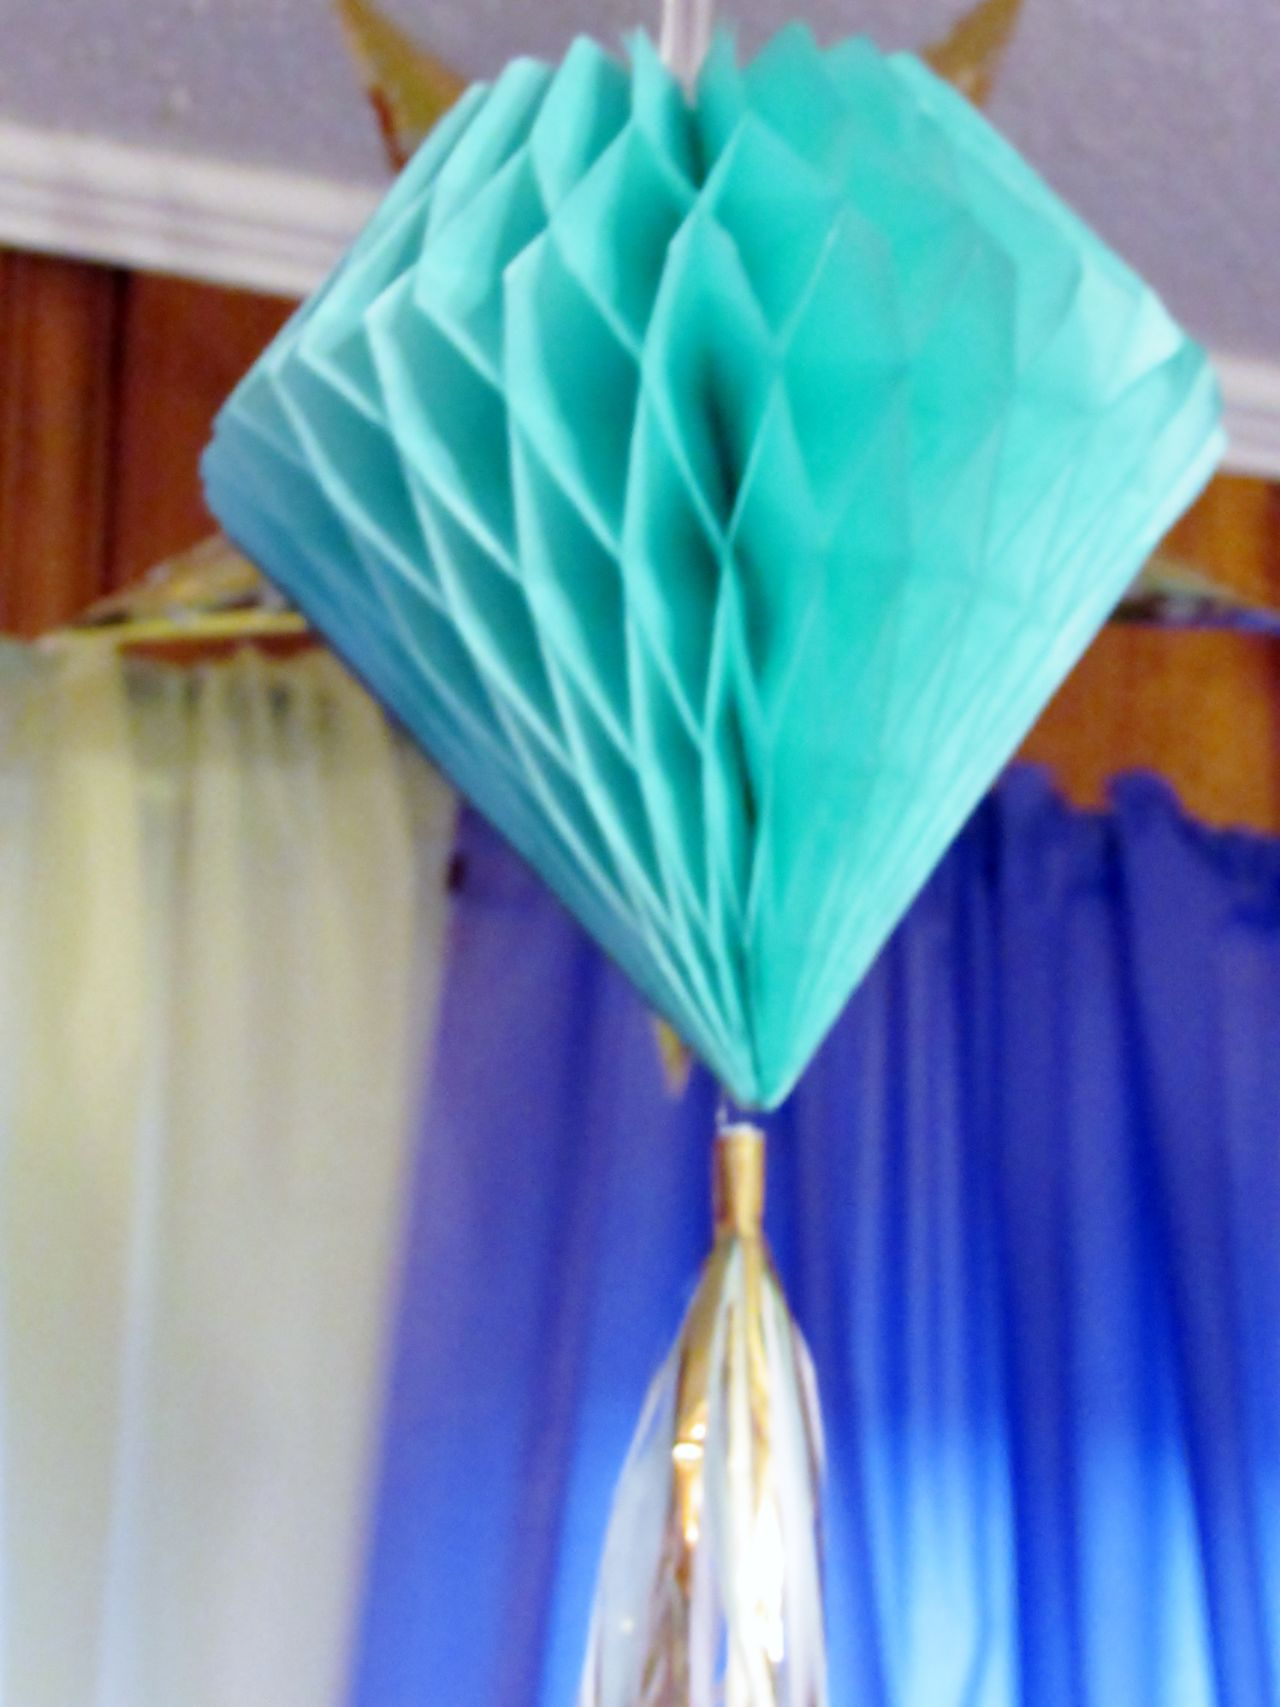 Decoration Crepe Paper Hanging Party Time Party Decoration Teal Lantern Birthday Party EyeEm